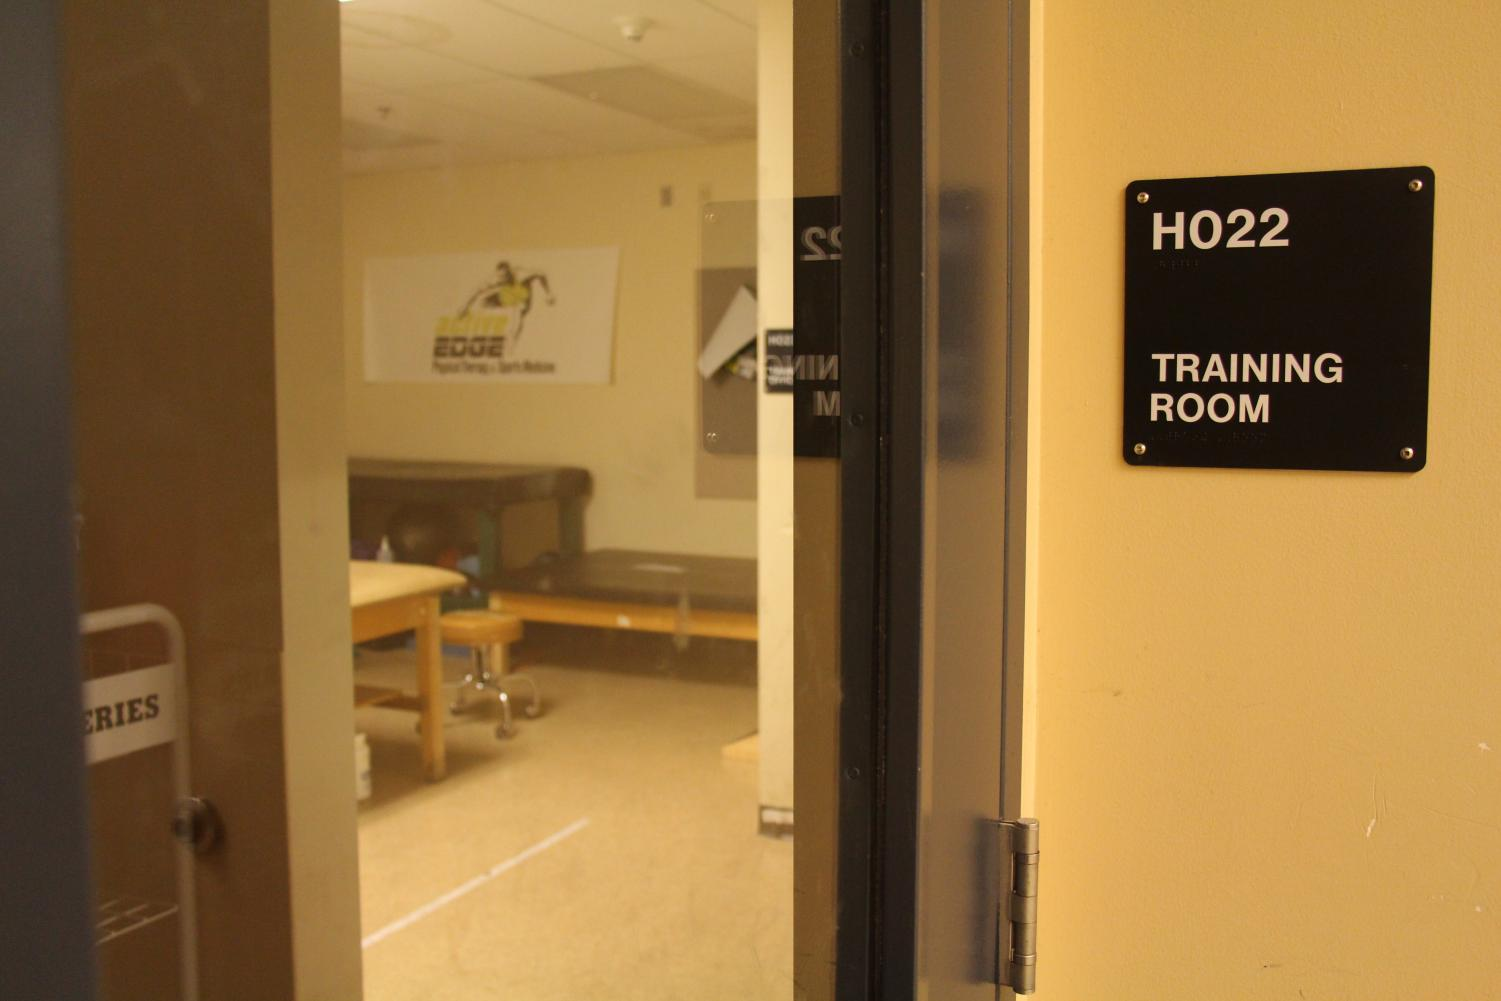 Located right next to the weight room, the training room is where Feuerherd is stationed. Students come here to have  injuries treated.